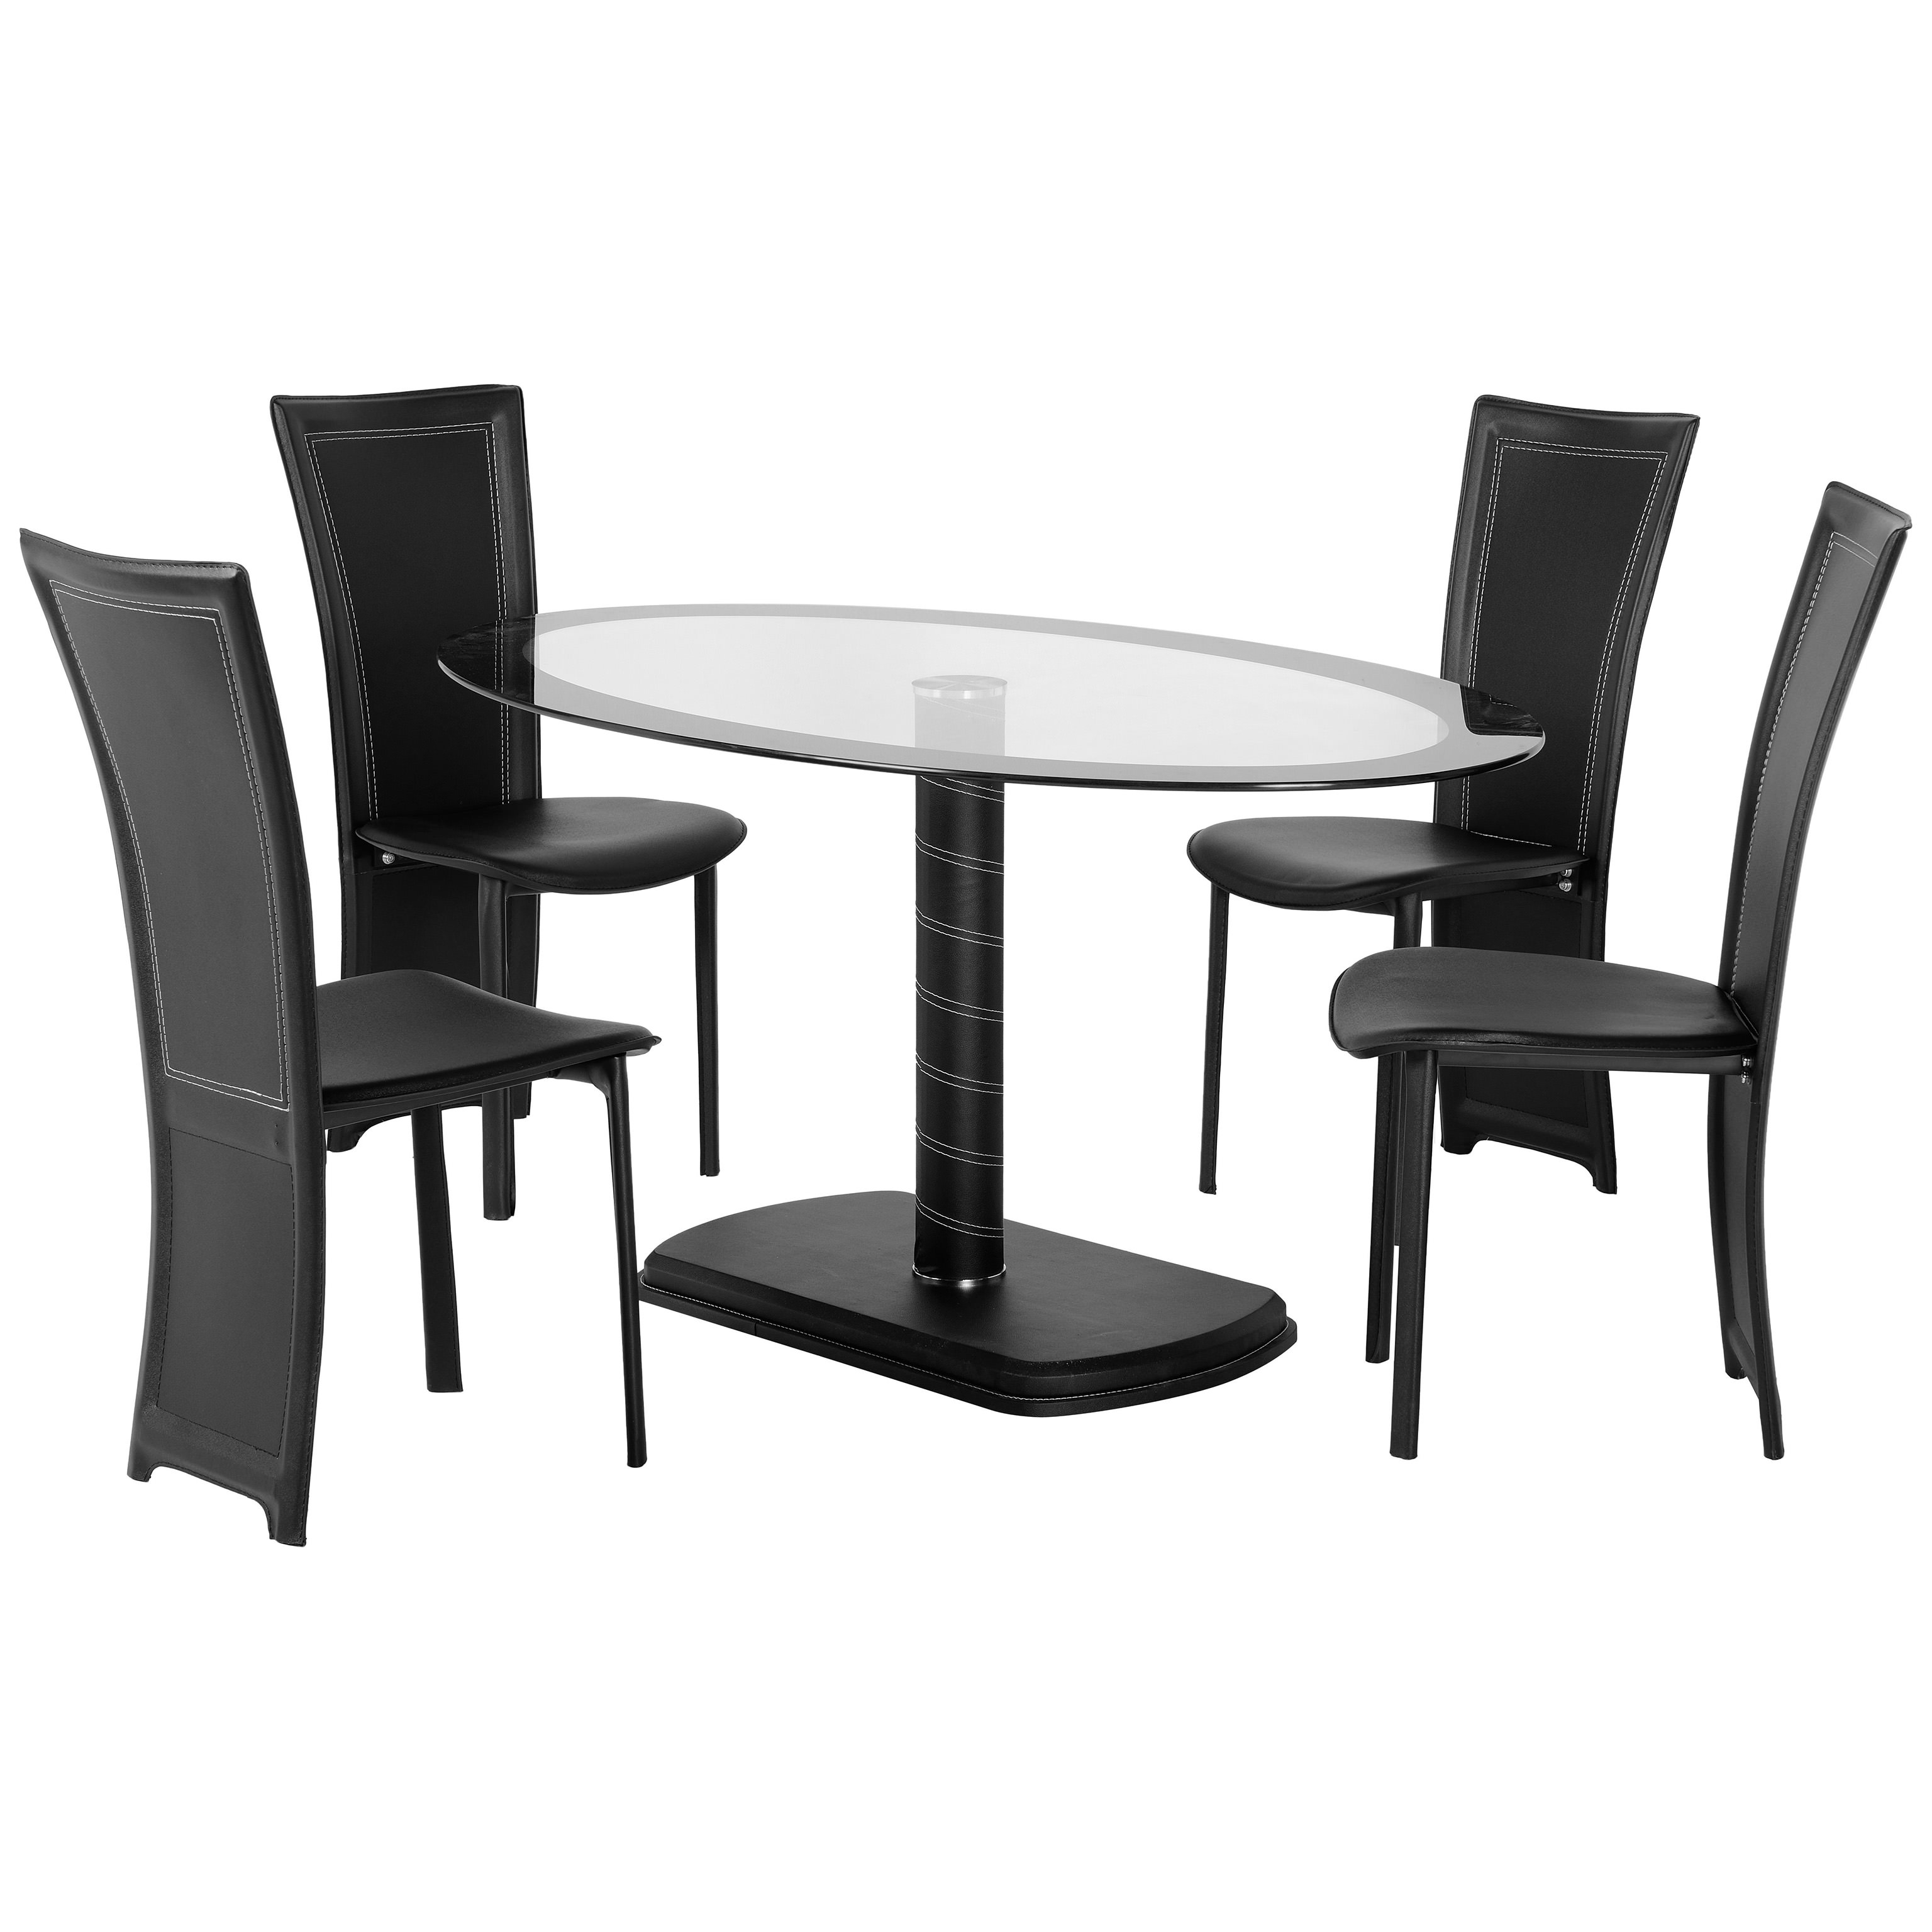 Details About Black & Clear Glass Oval Dining Table And Chair Set With 4  Leather Seats In Favorite Clear Glass Dining Tables And Chairs (View 16 of 25)